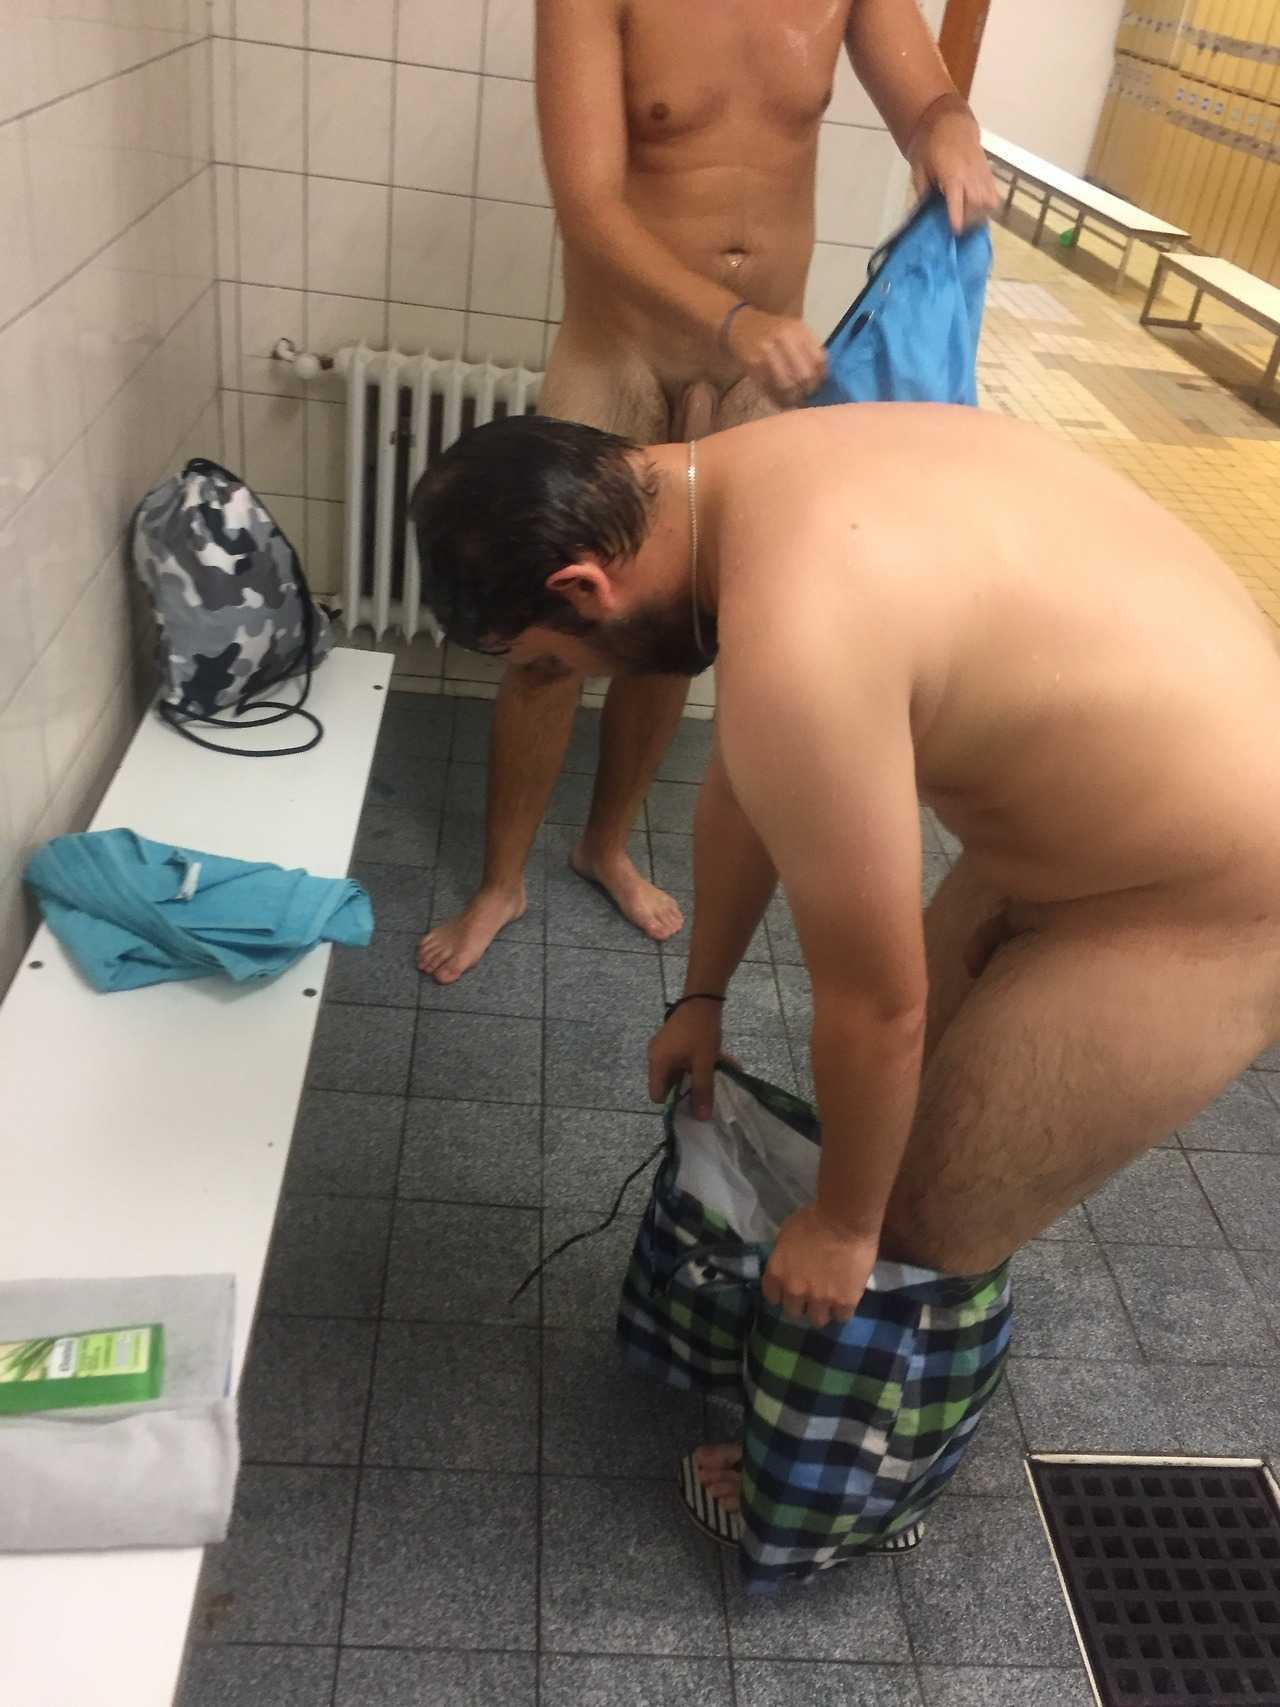 spy on nude guy caught in dressing room